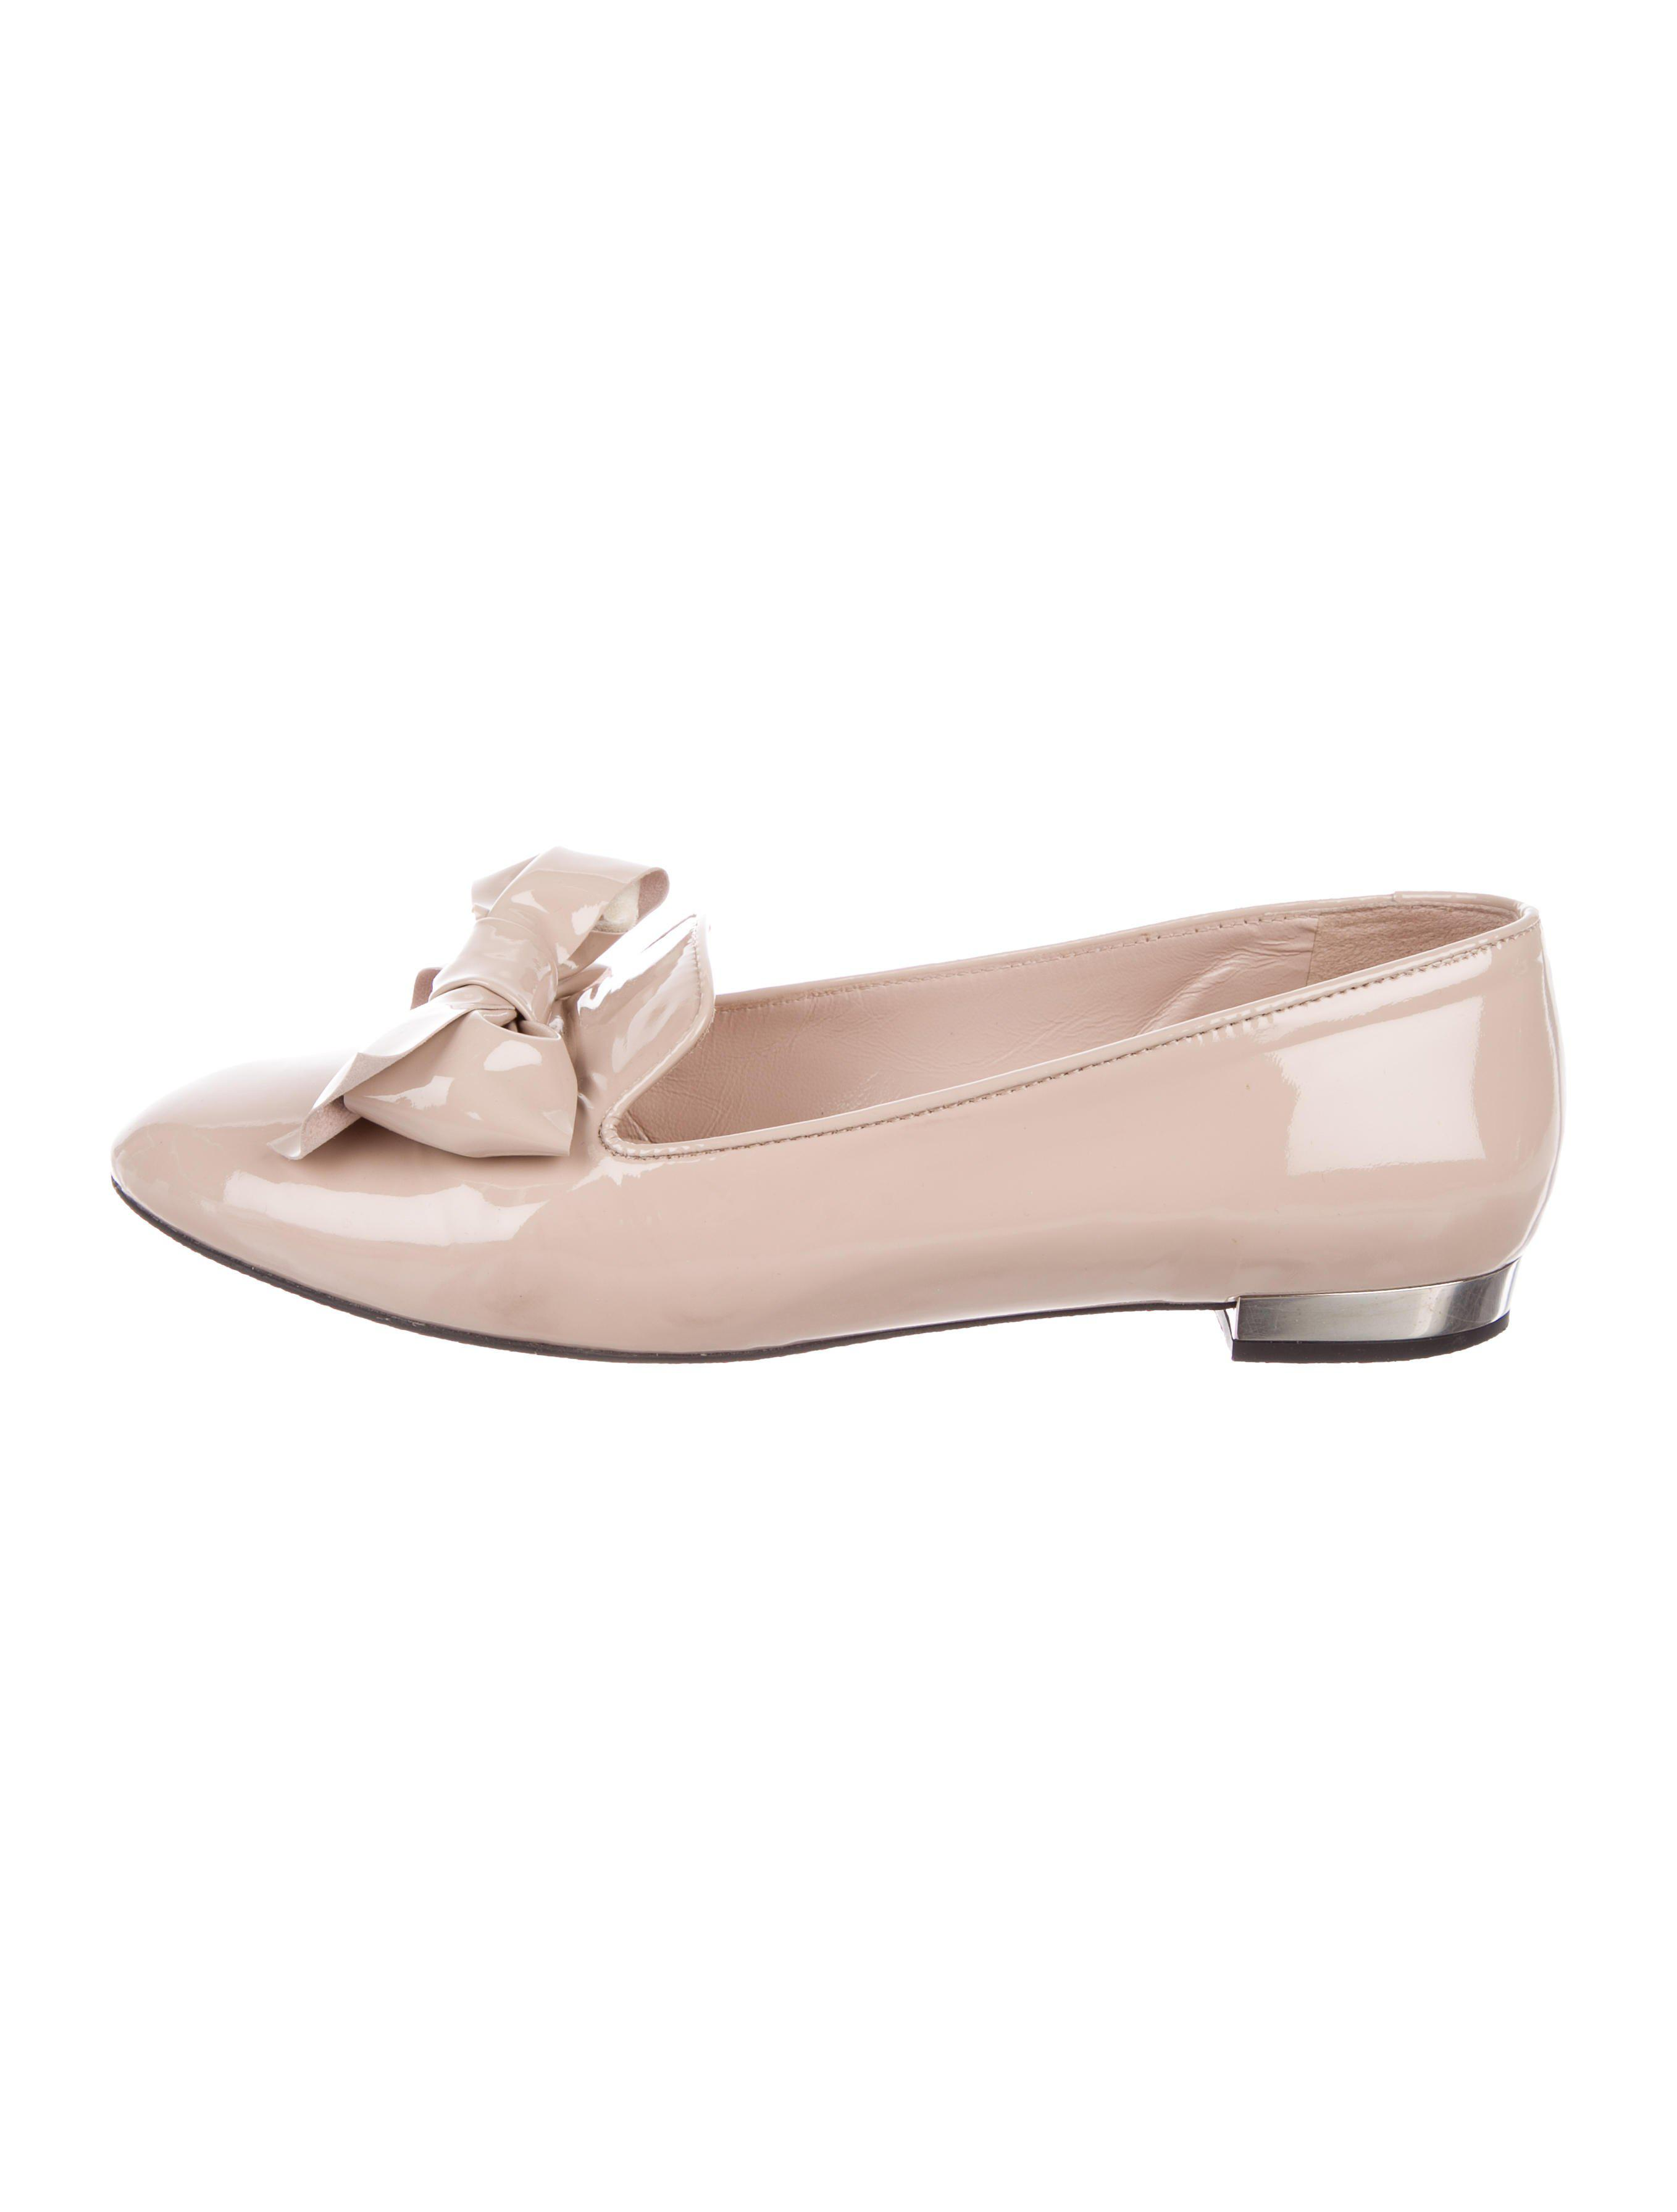 Miu Miu Patent Leather Bow-Adorned Loafers discount geniue stockist hot sale cheap online 4n5Axxv5